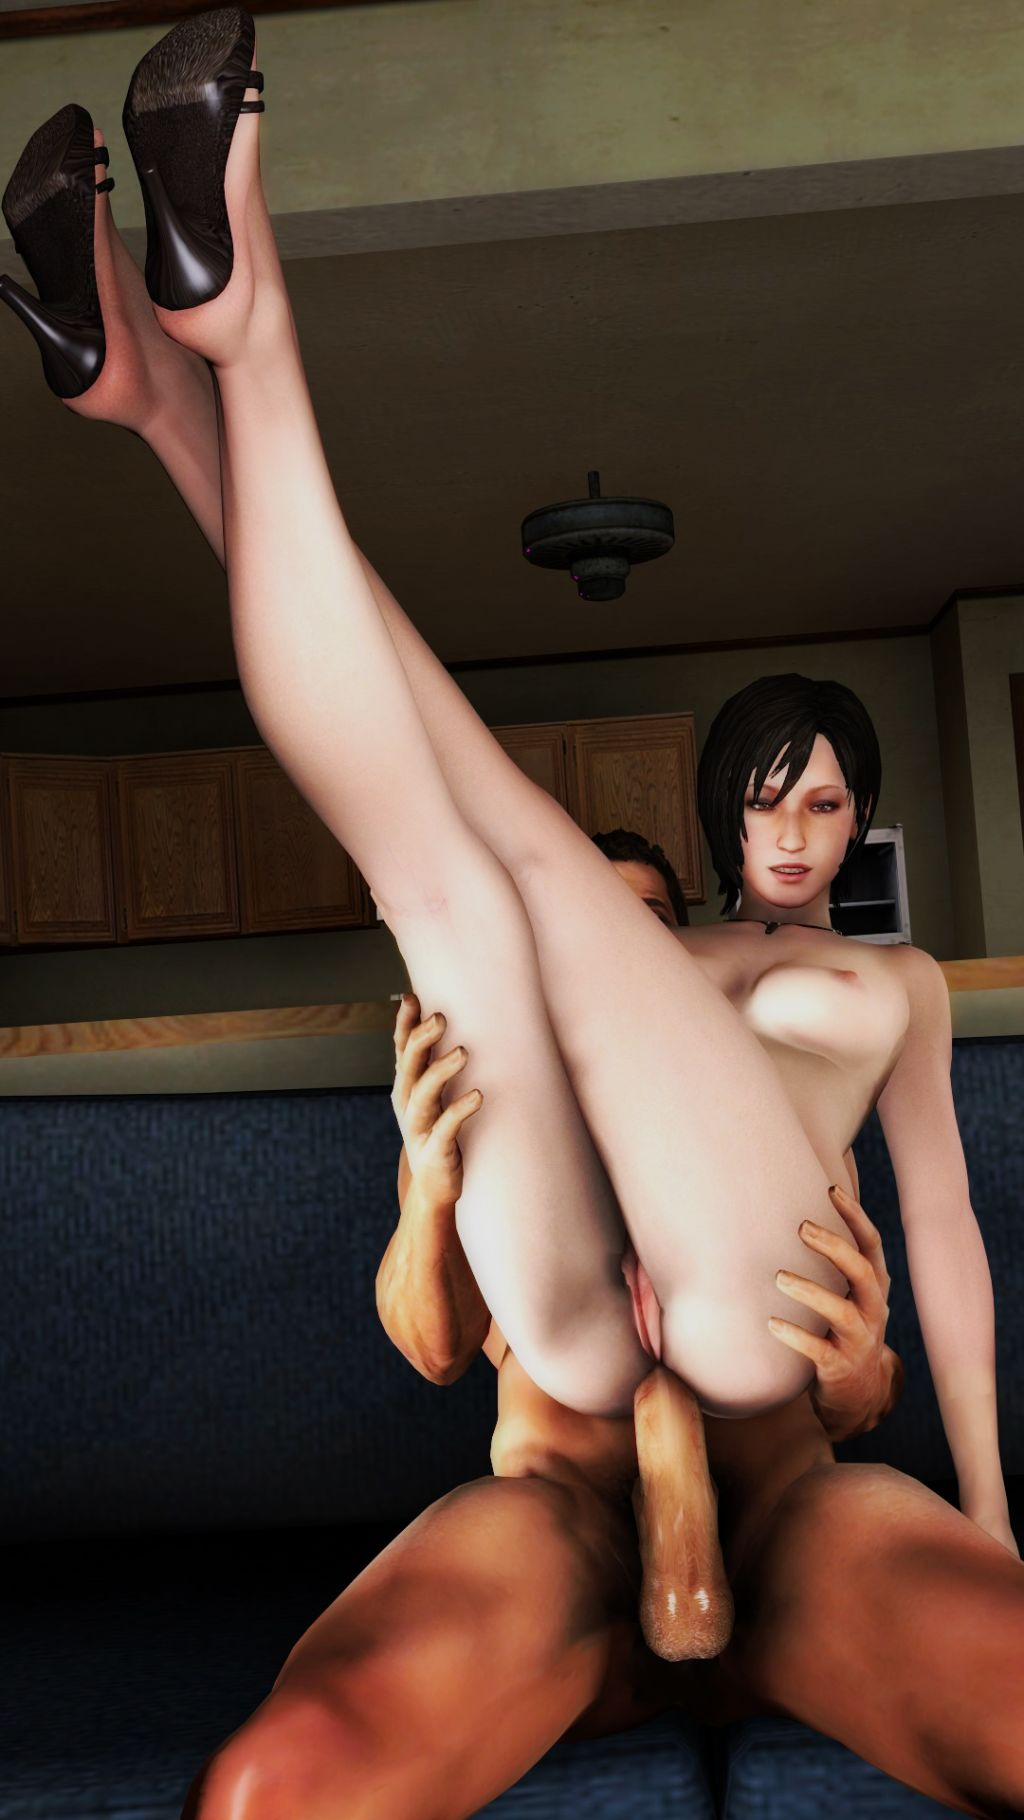 Ada wong porno softcore video